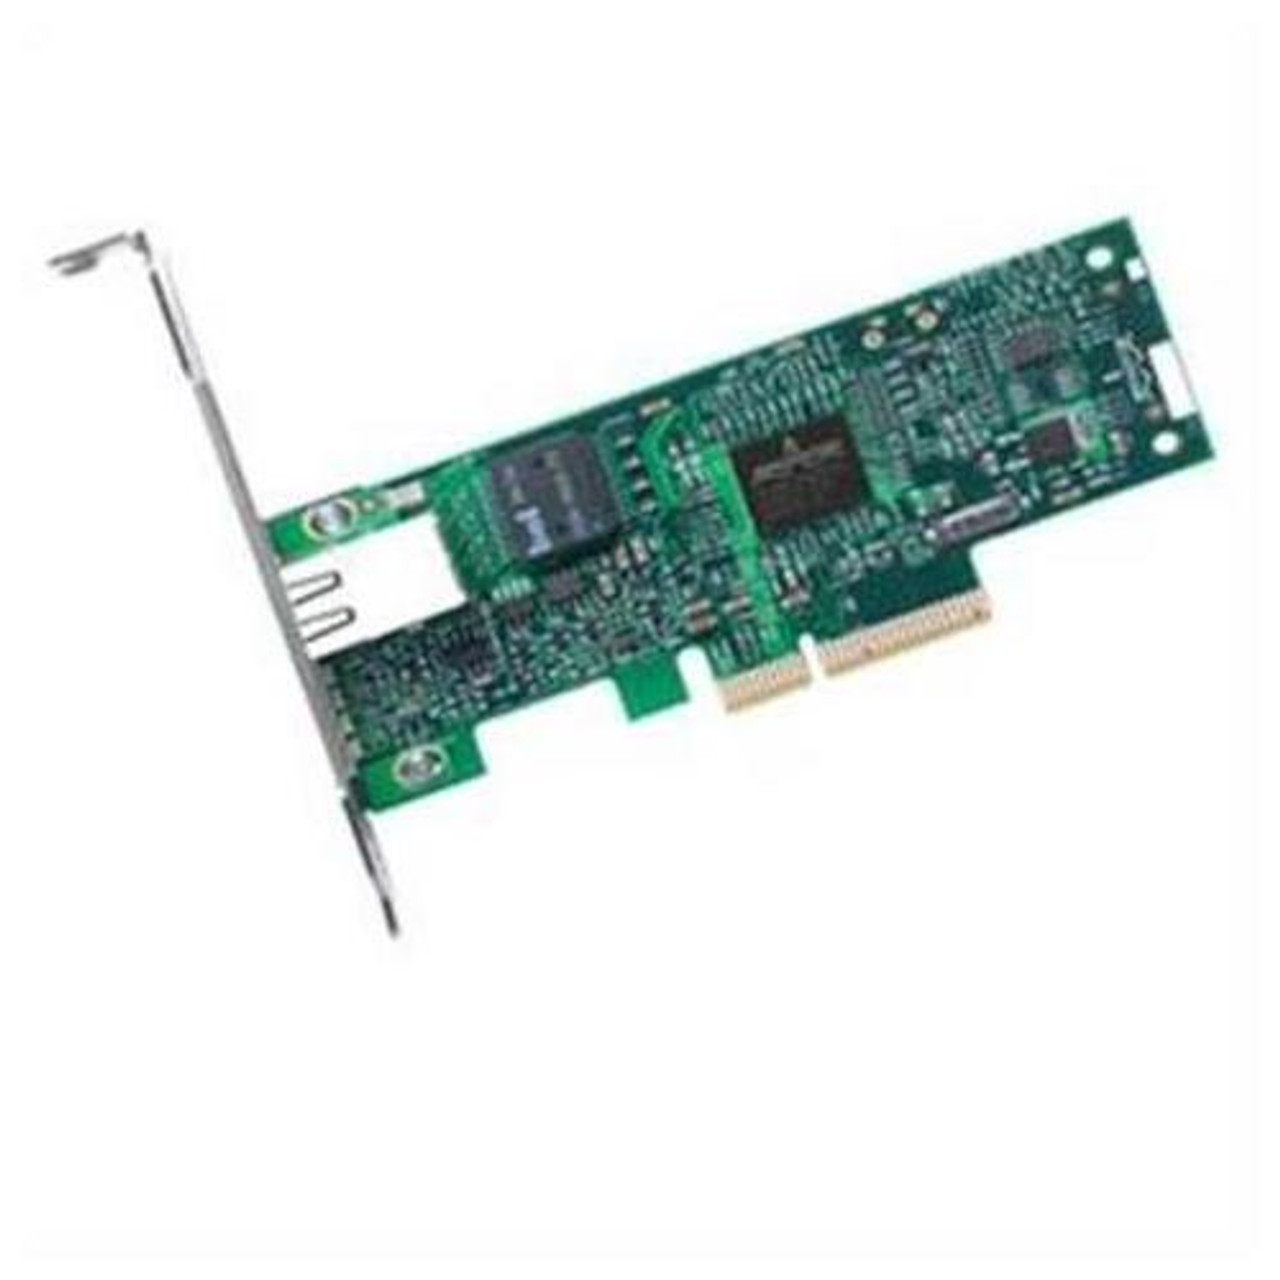 YGW92 Dell Emulex Oneconnect Oce14102-ux-d 10Gbps PCI Express Converged  Network Adapter